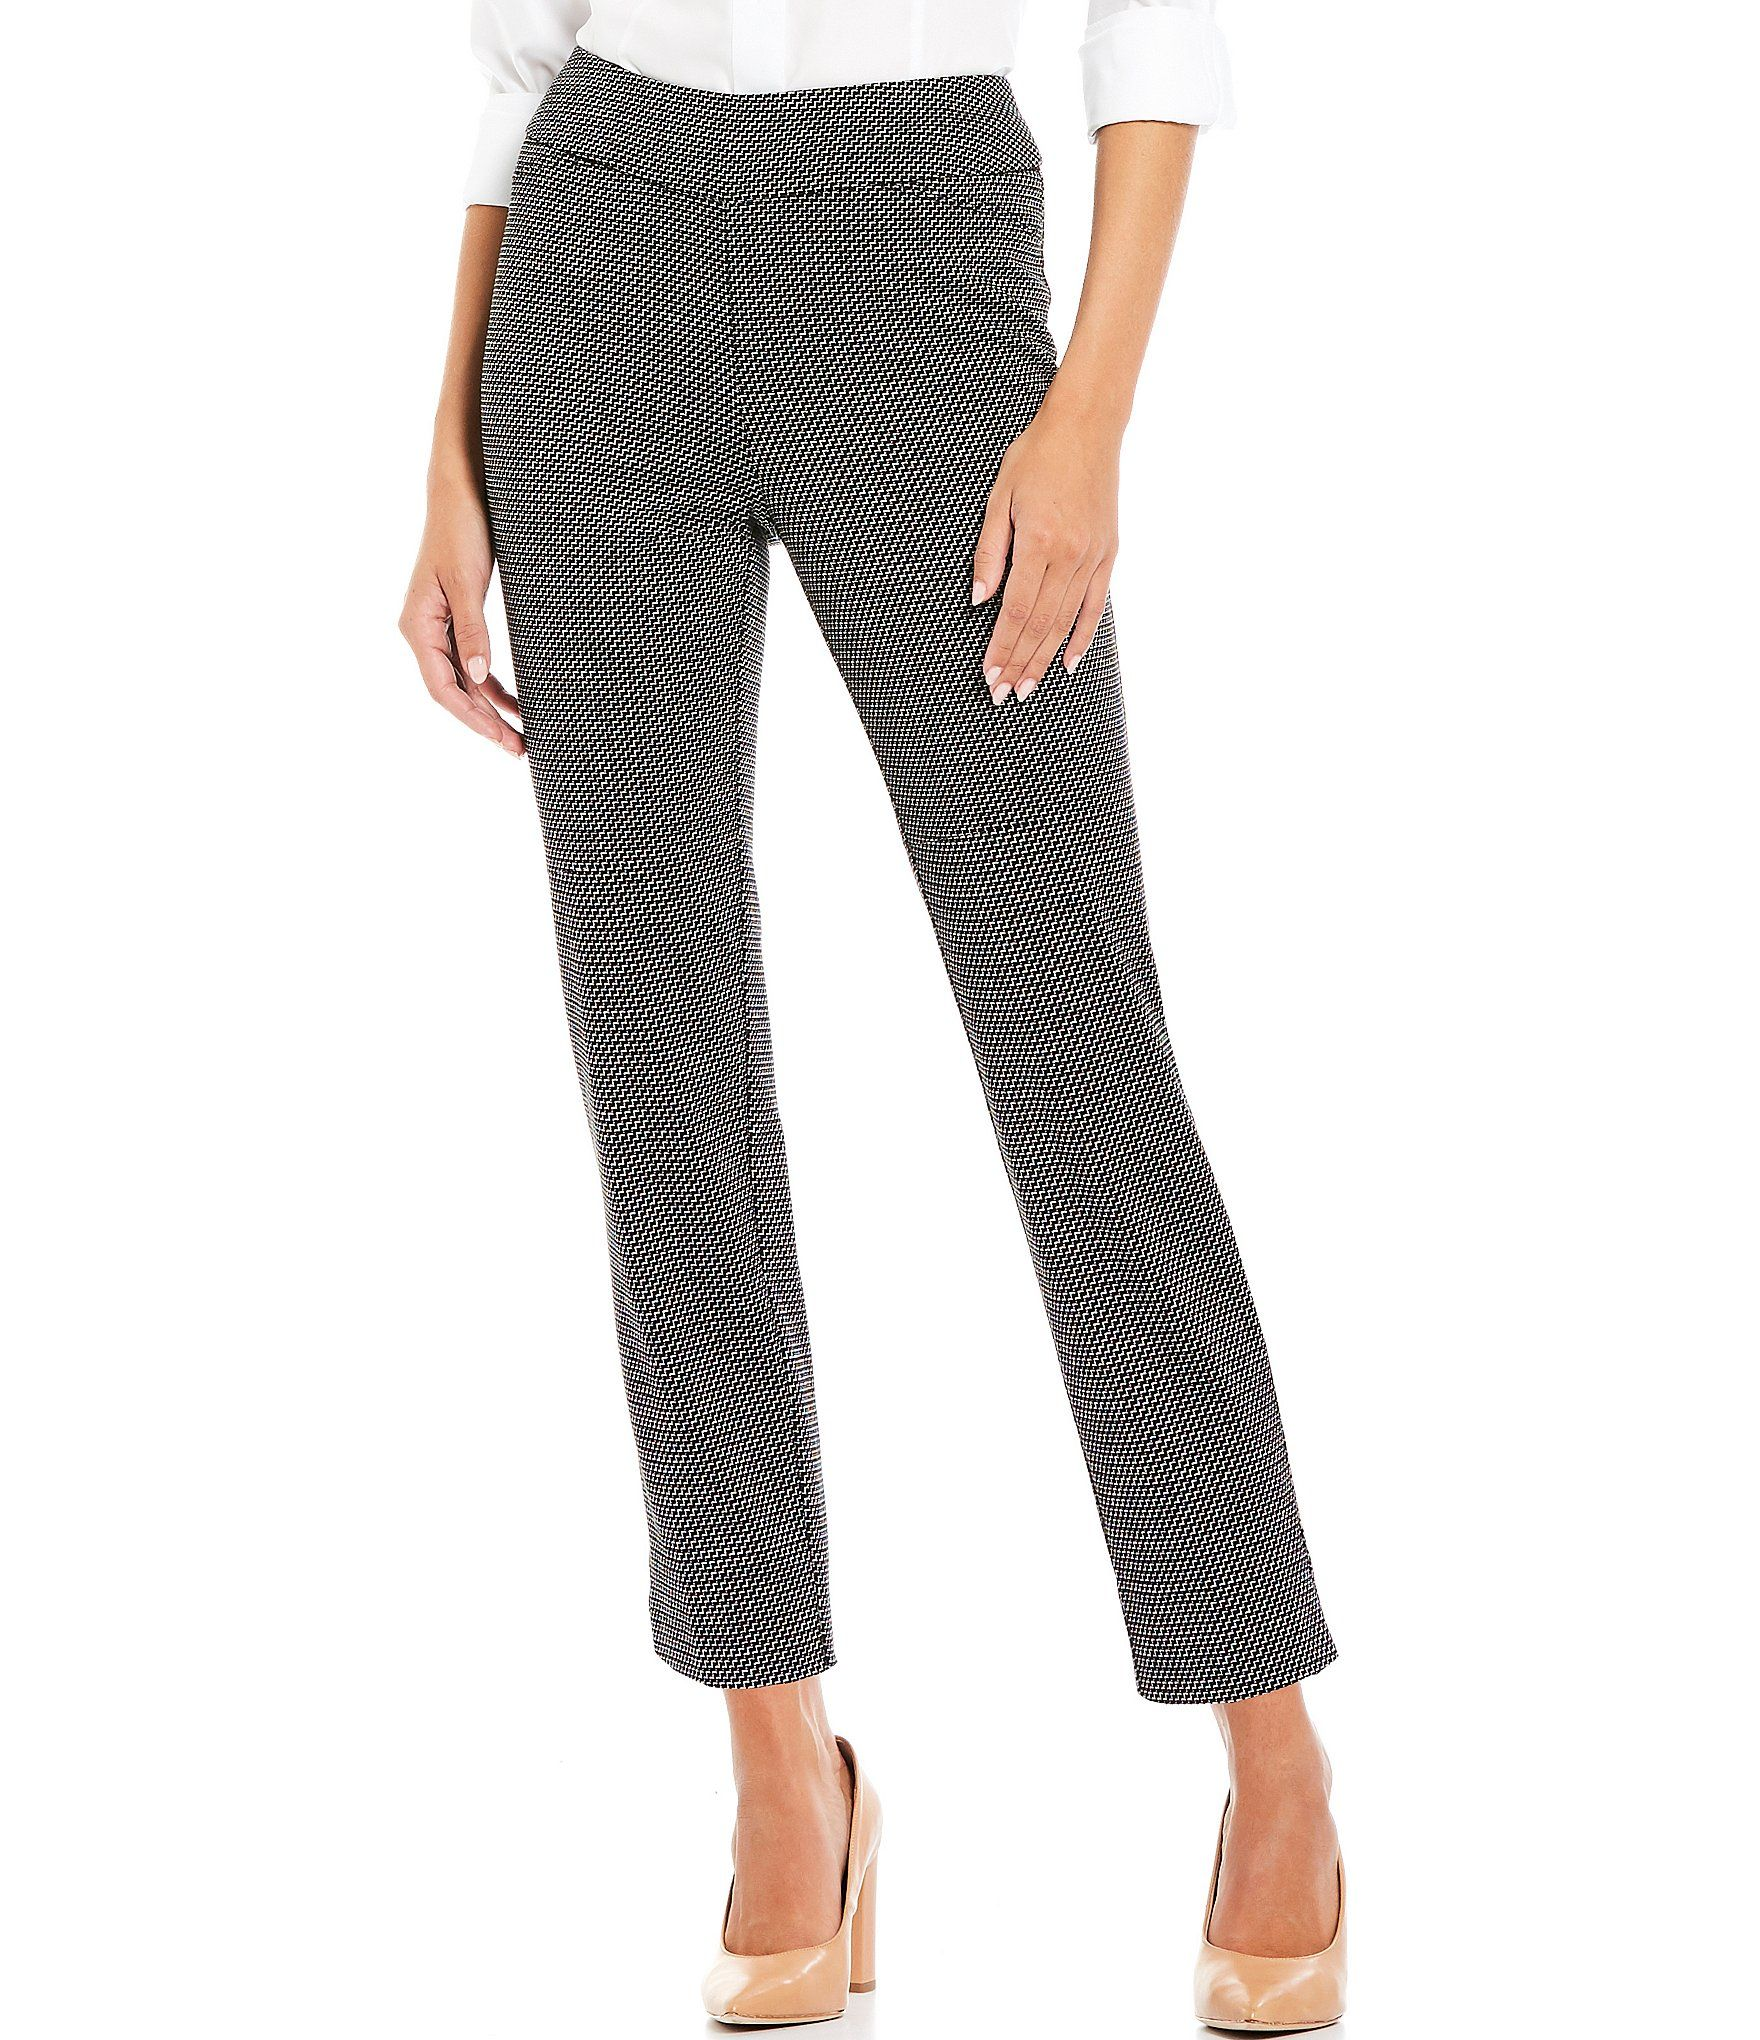 Investments the PARK AVE fit Pull-On Classic Straight Ankle Pants – Zig-Zag 10